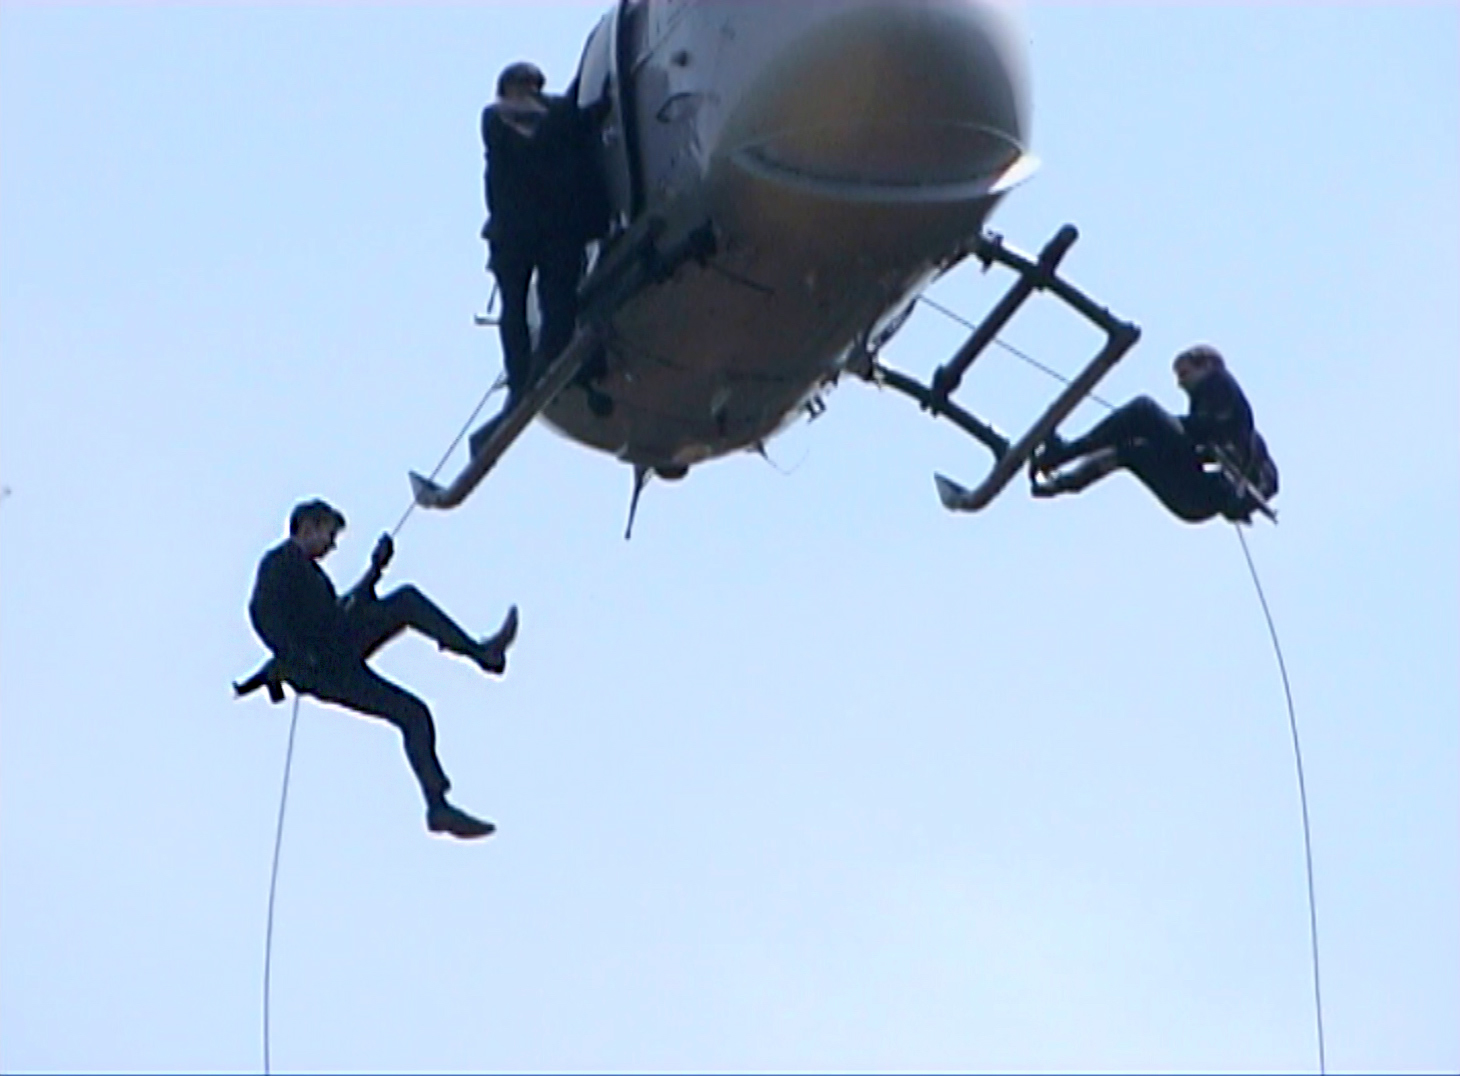 MG Action, Martin Goeres, Action design, Film Produktion, Stuntproduktion, abseilen,